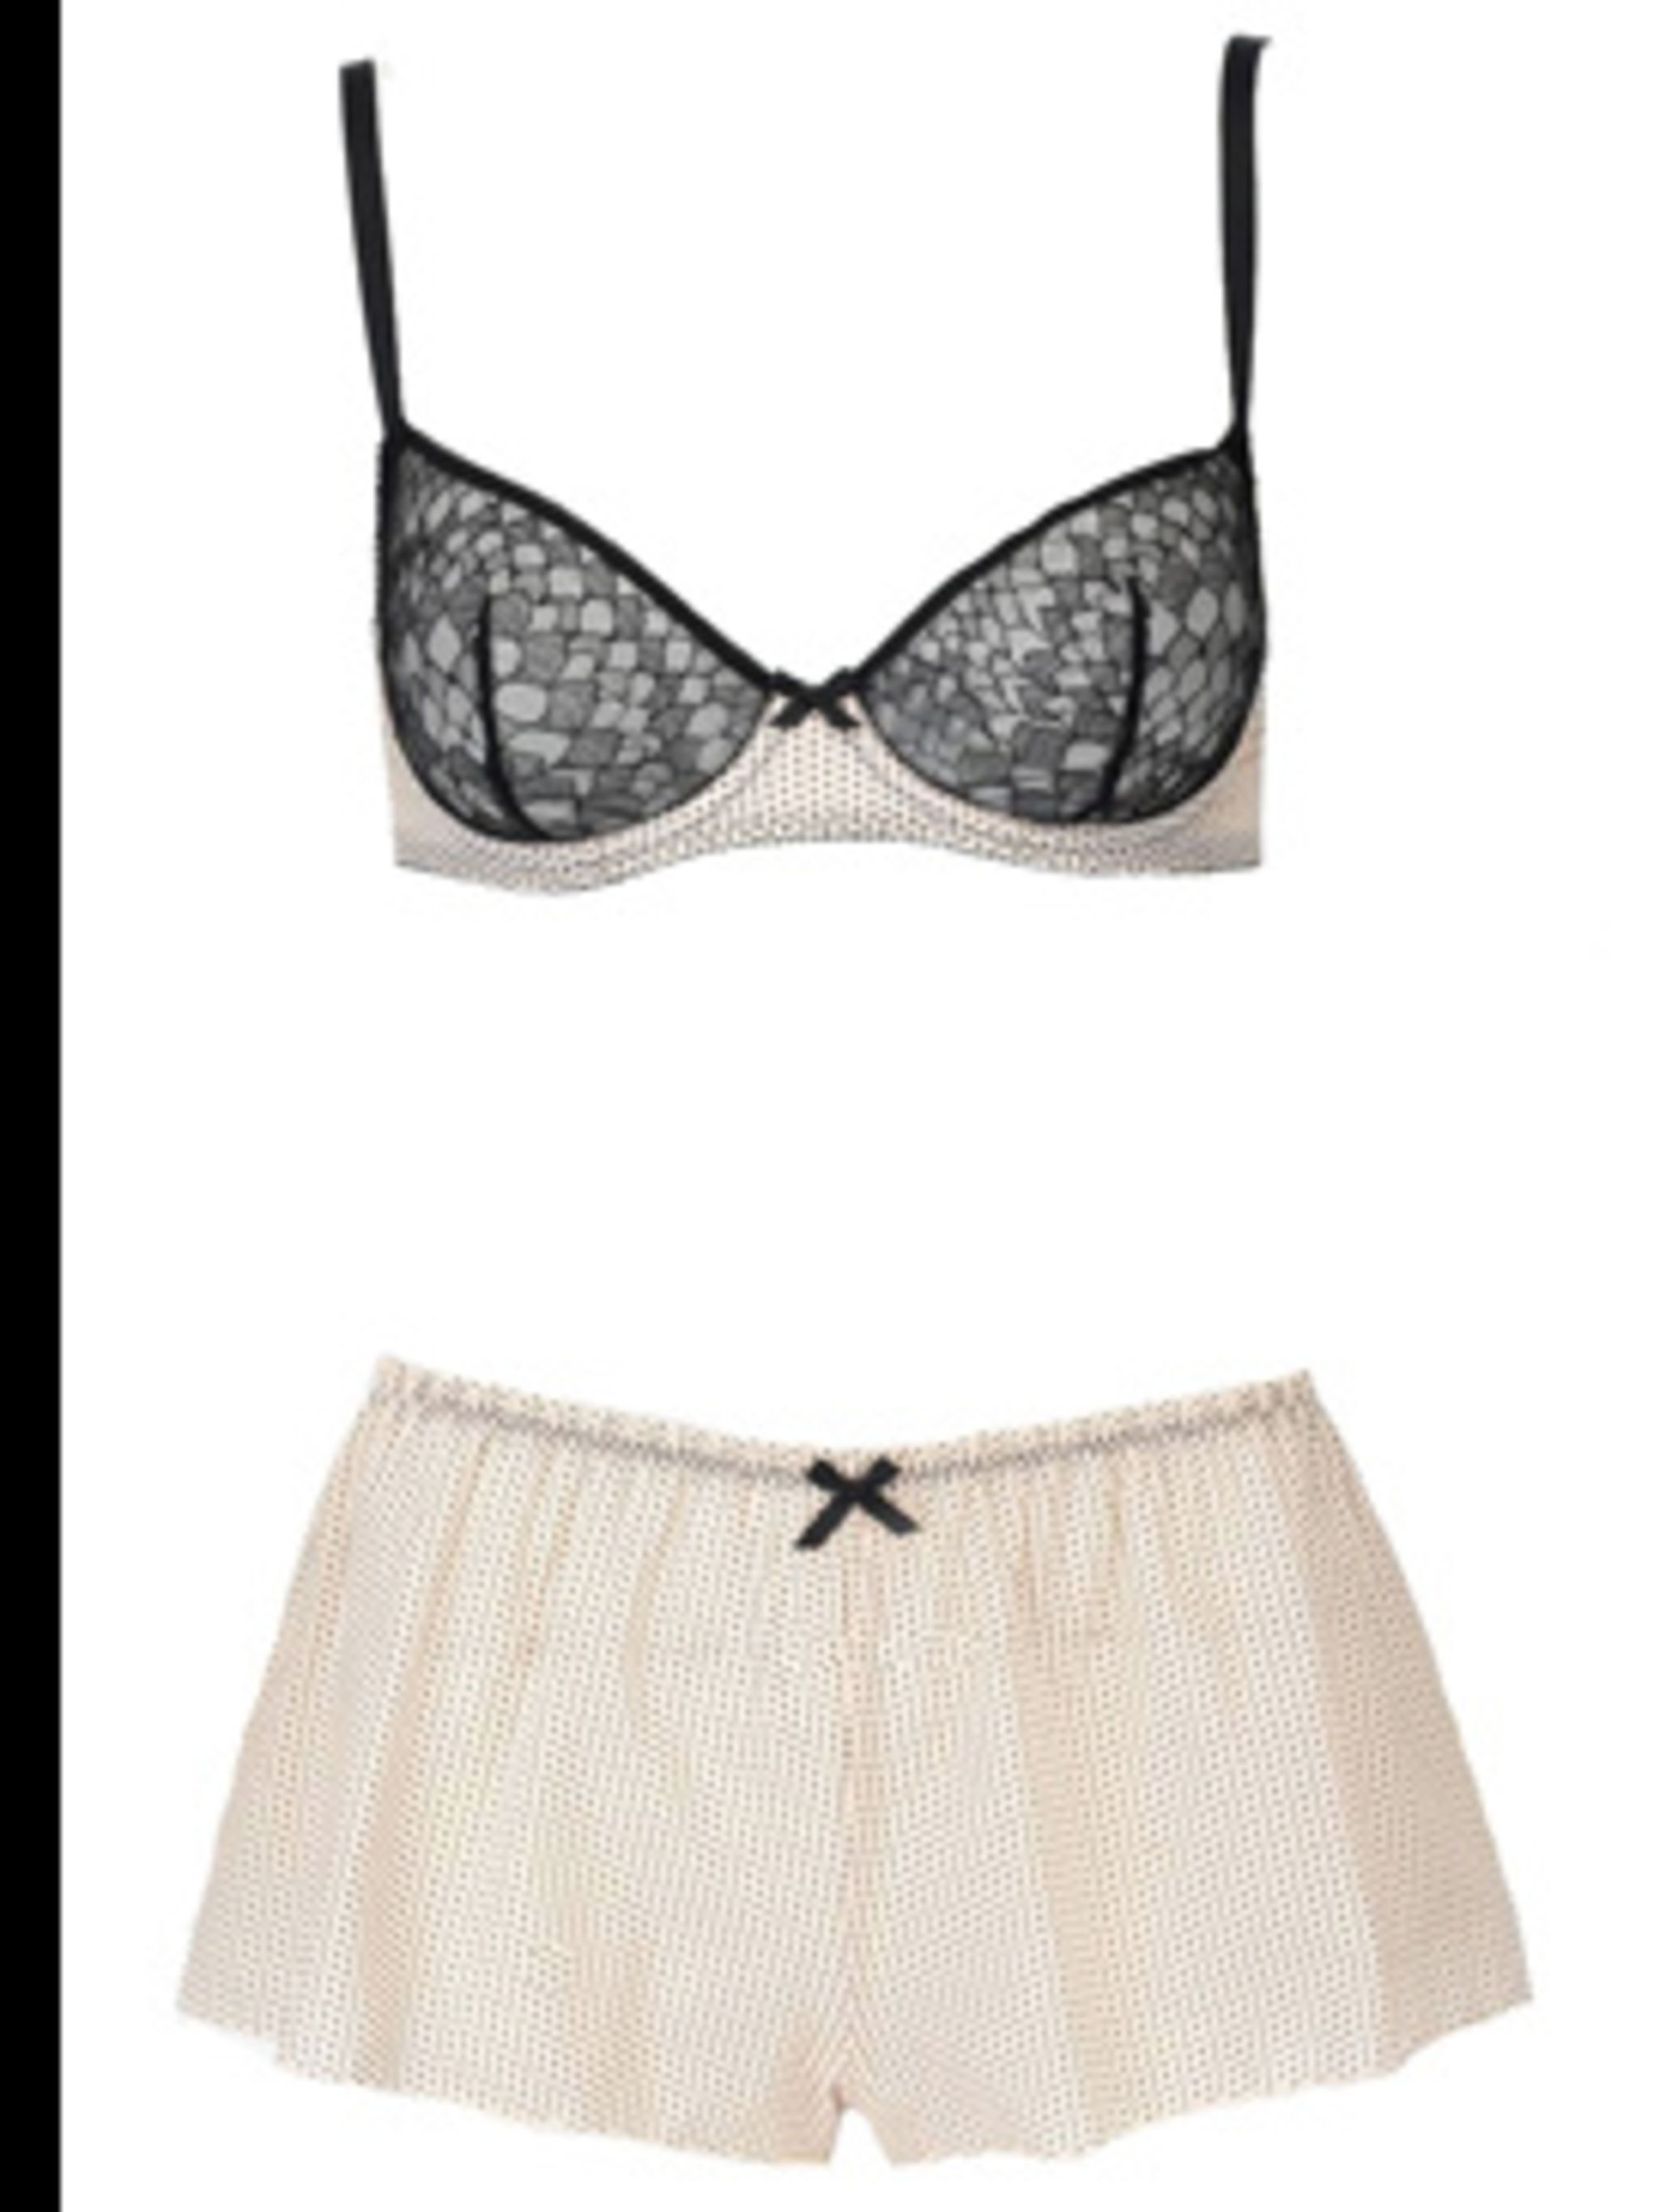 "<p>Polka dot bra £89, and polka dots panty £52, by <a href=""http://www.wolfordboutiquelondon.com"">Wolford</a></p>"